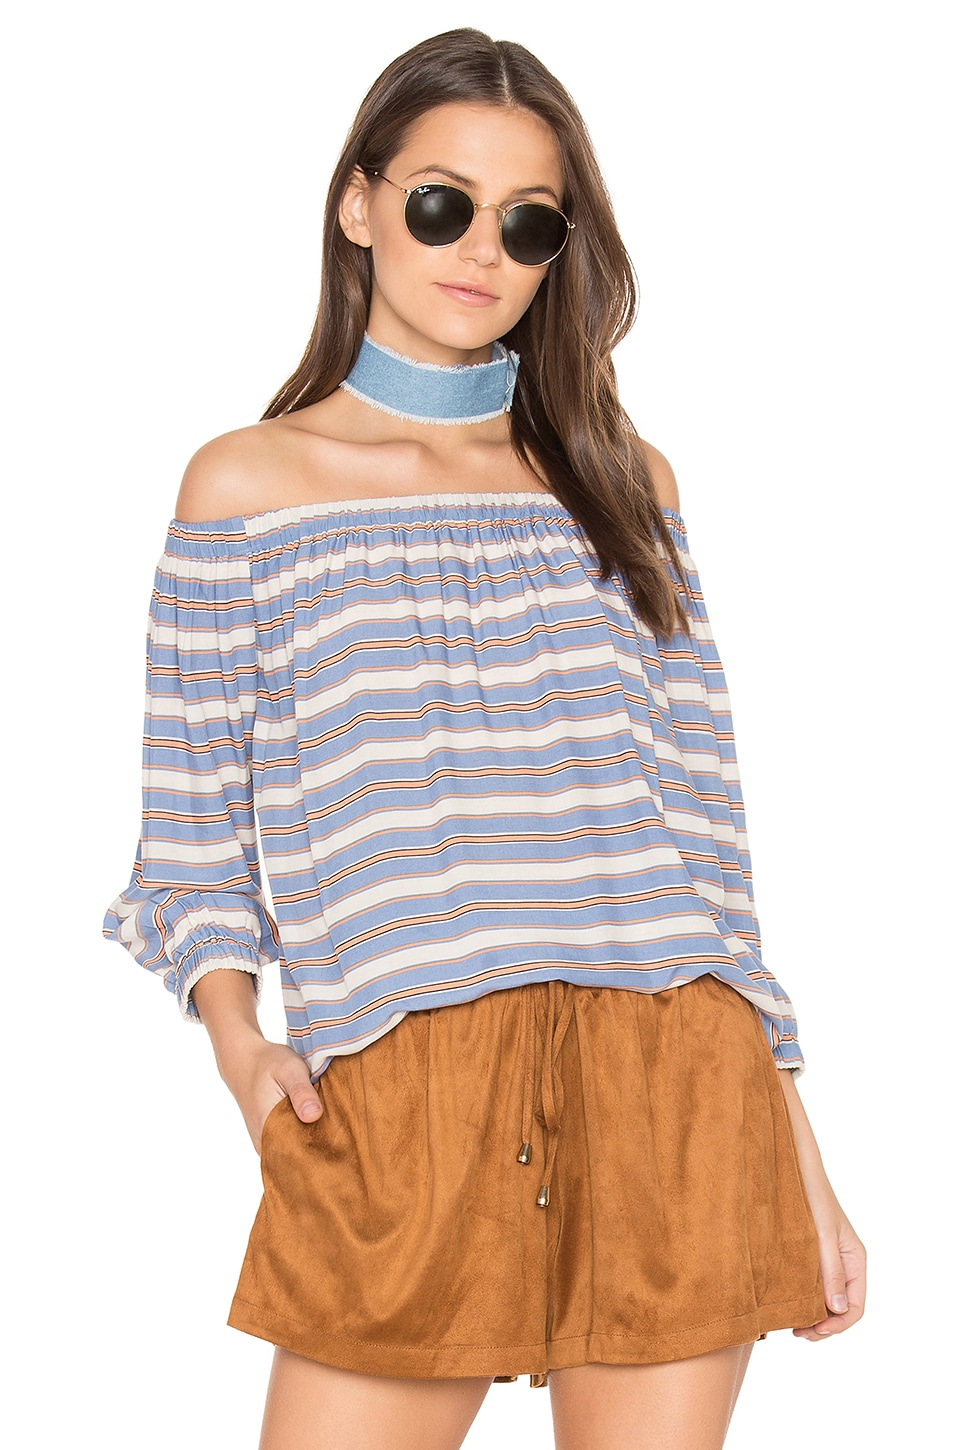 Photo of Lucia Top by Bishop + Young on sale